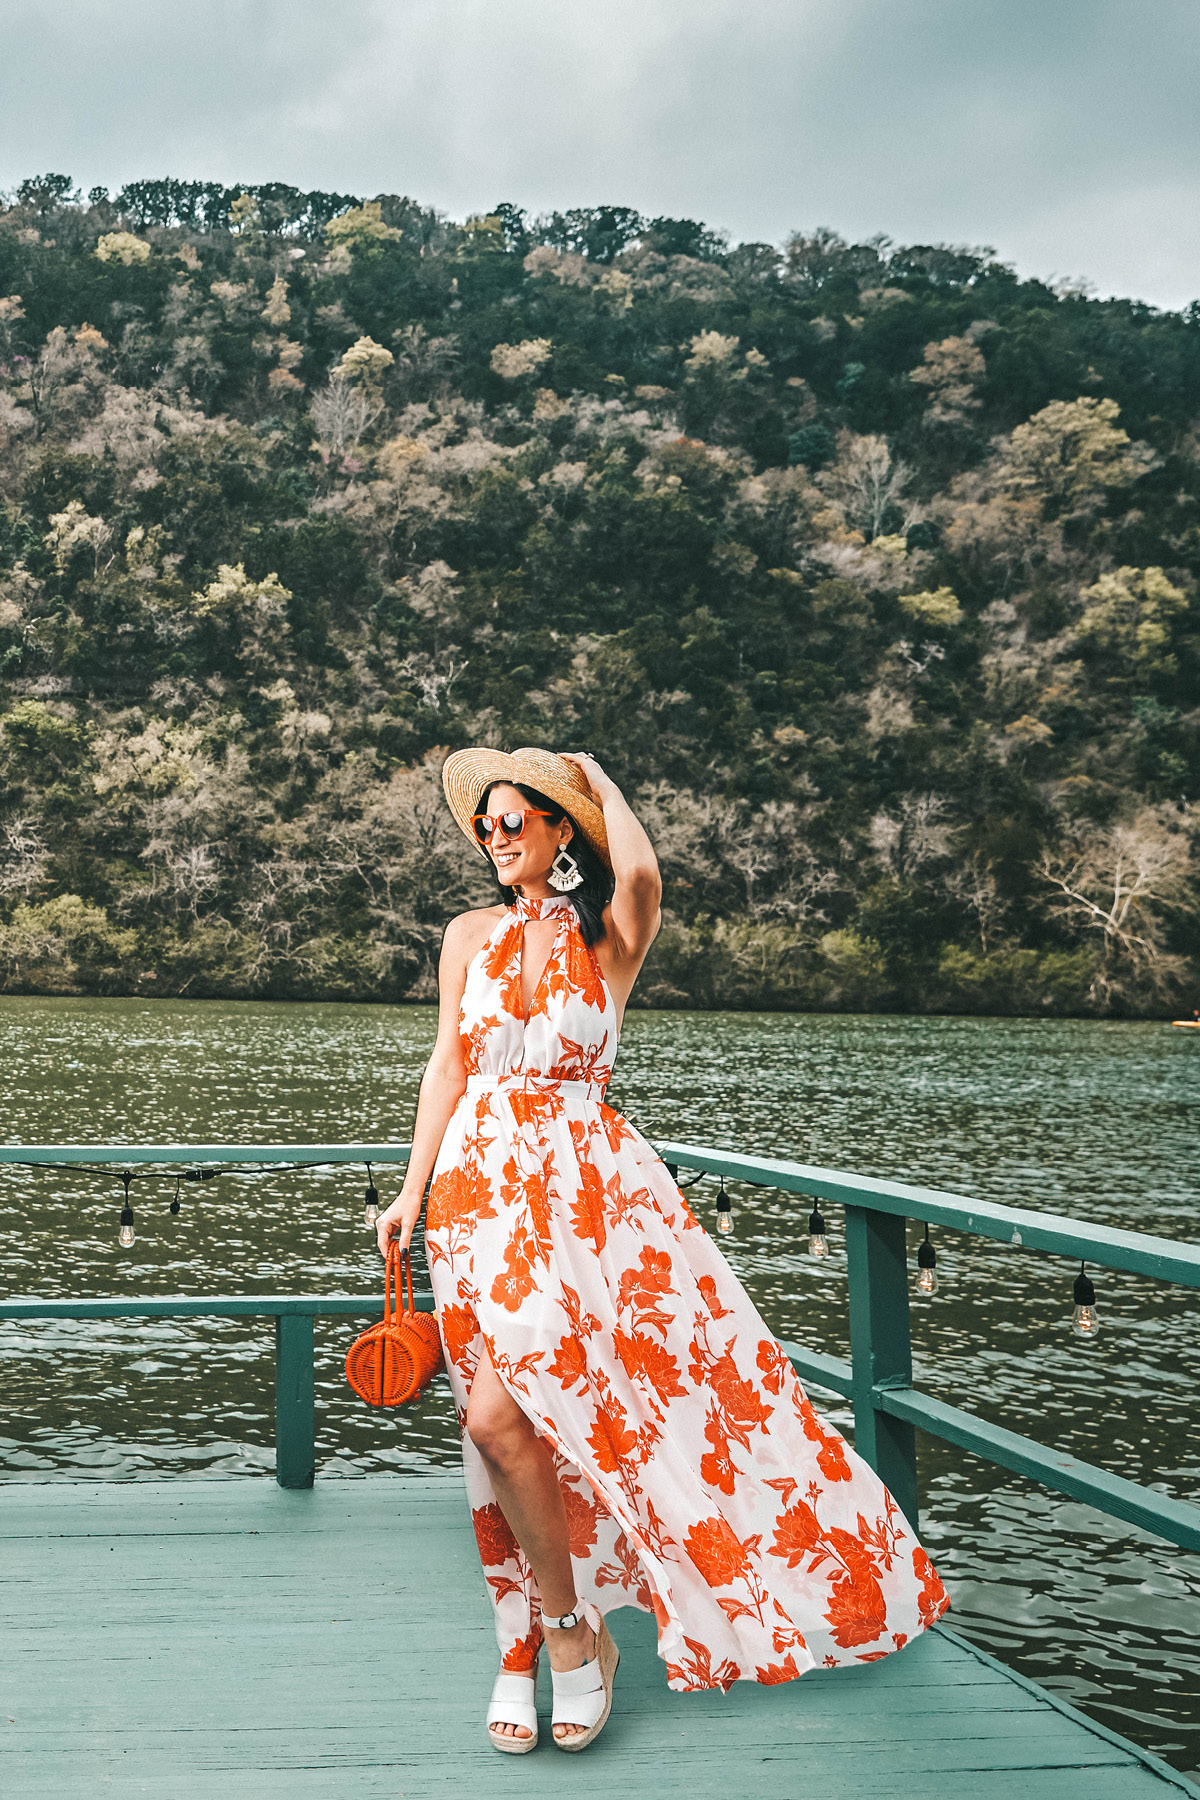 Floral Maxi Dress featured by top US fashion blog Dressed to Kill; Image of a woman wearing VICIdress, Cleobella handbag, Treasure & Bond shoes, Vitamin A hat, Baublebar earrings and Amazon sunglasses.